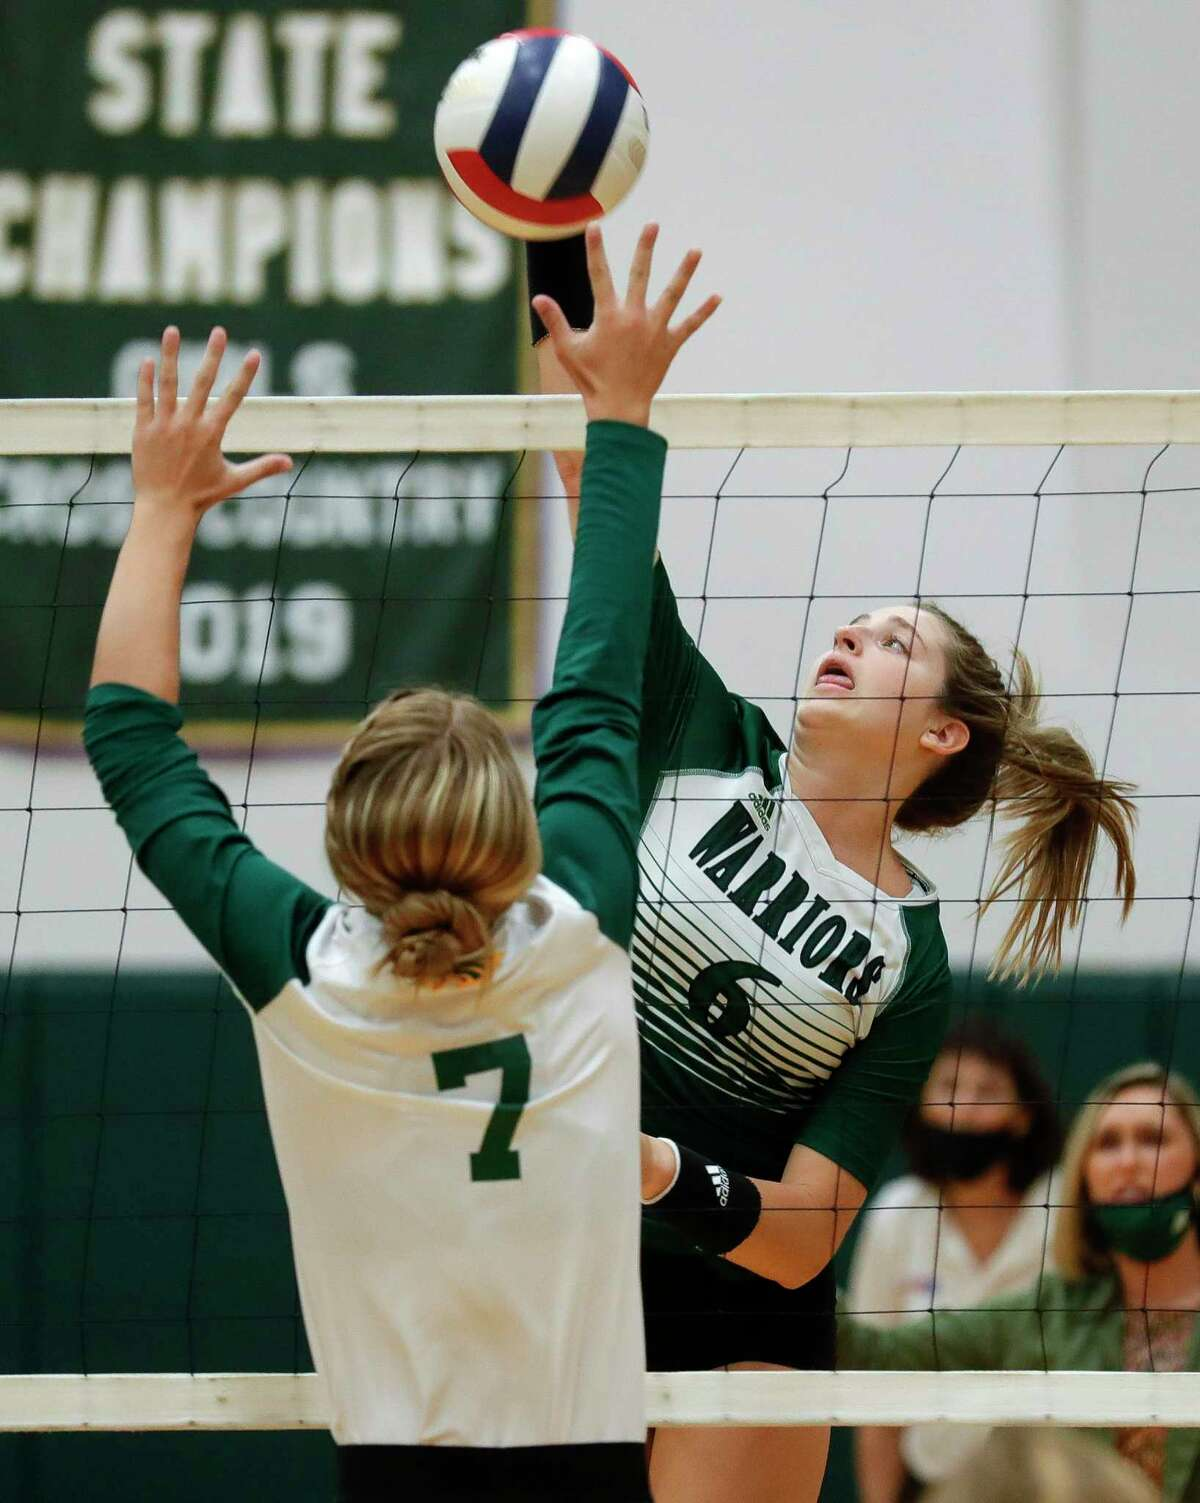 The Woodlands Christian Academy outside hitter Abby Adams (6) gets a shot past Fort Bend Christian Academy setter Reagan Heflin (7) during the first set of a TAPPS high school volleyball match at The Woodlands Christian Academy, Tuesday, Sept. 29, 2020, in The Woodlands.